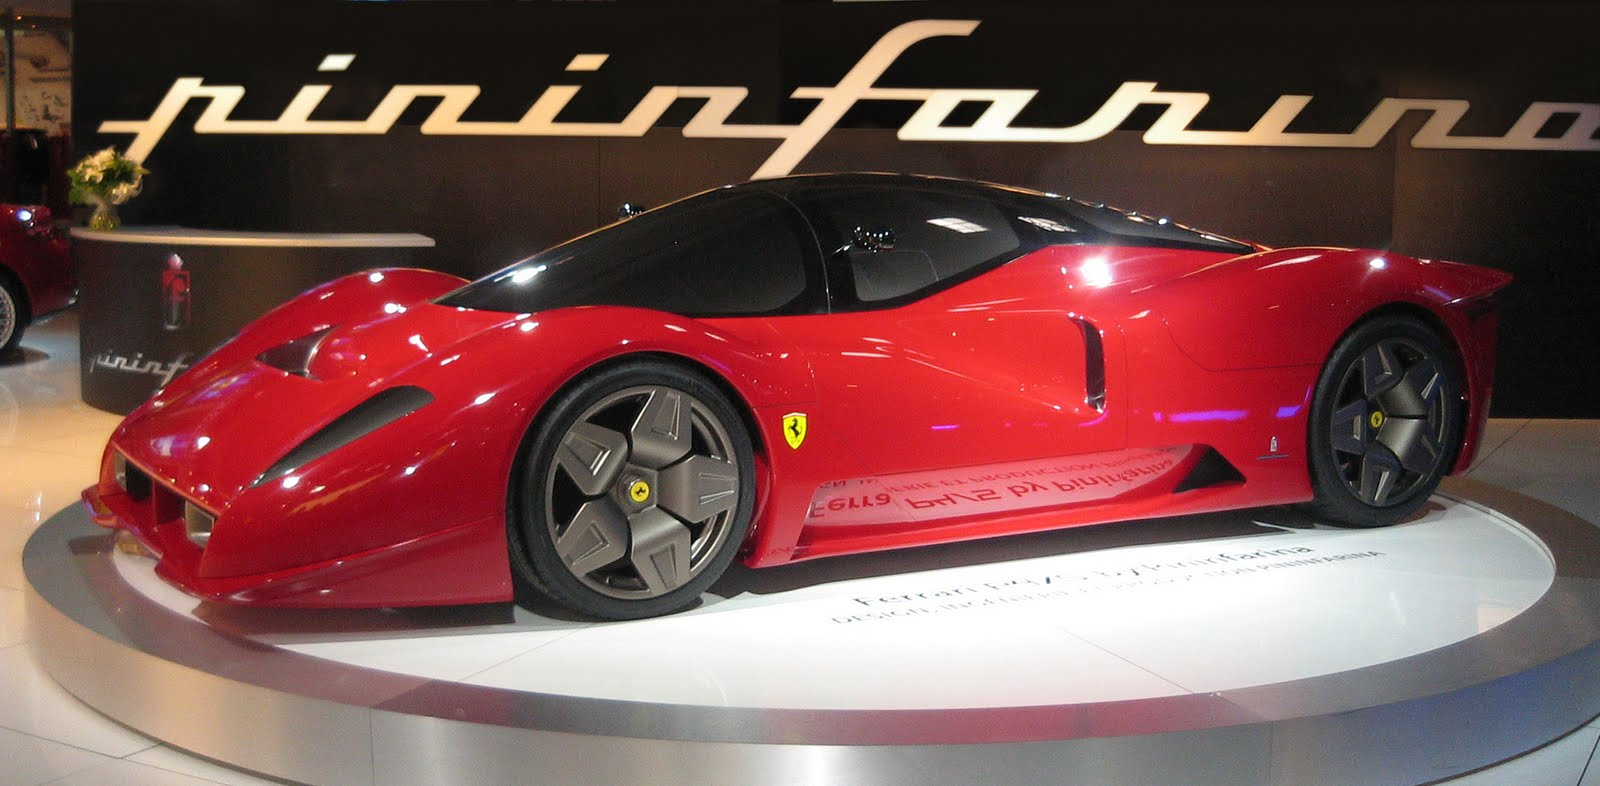 Logos Car Lambo Ferrari Mix Wallpaper